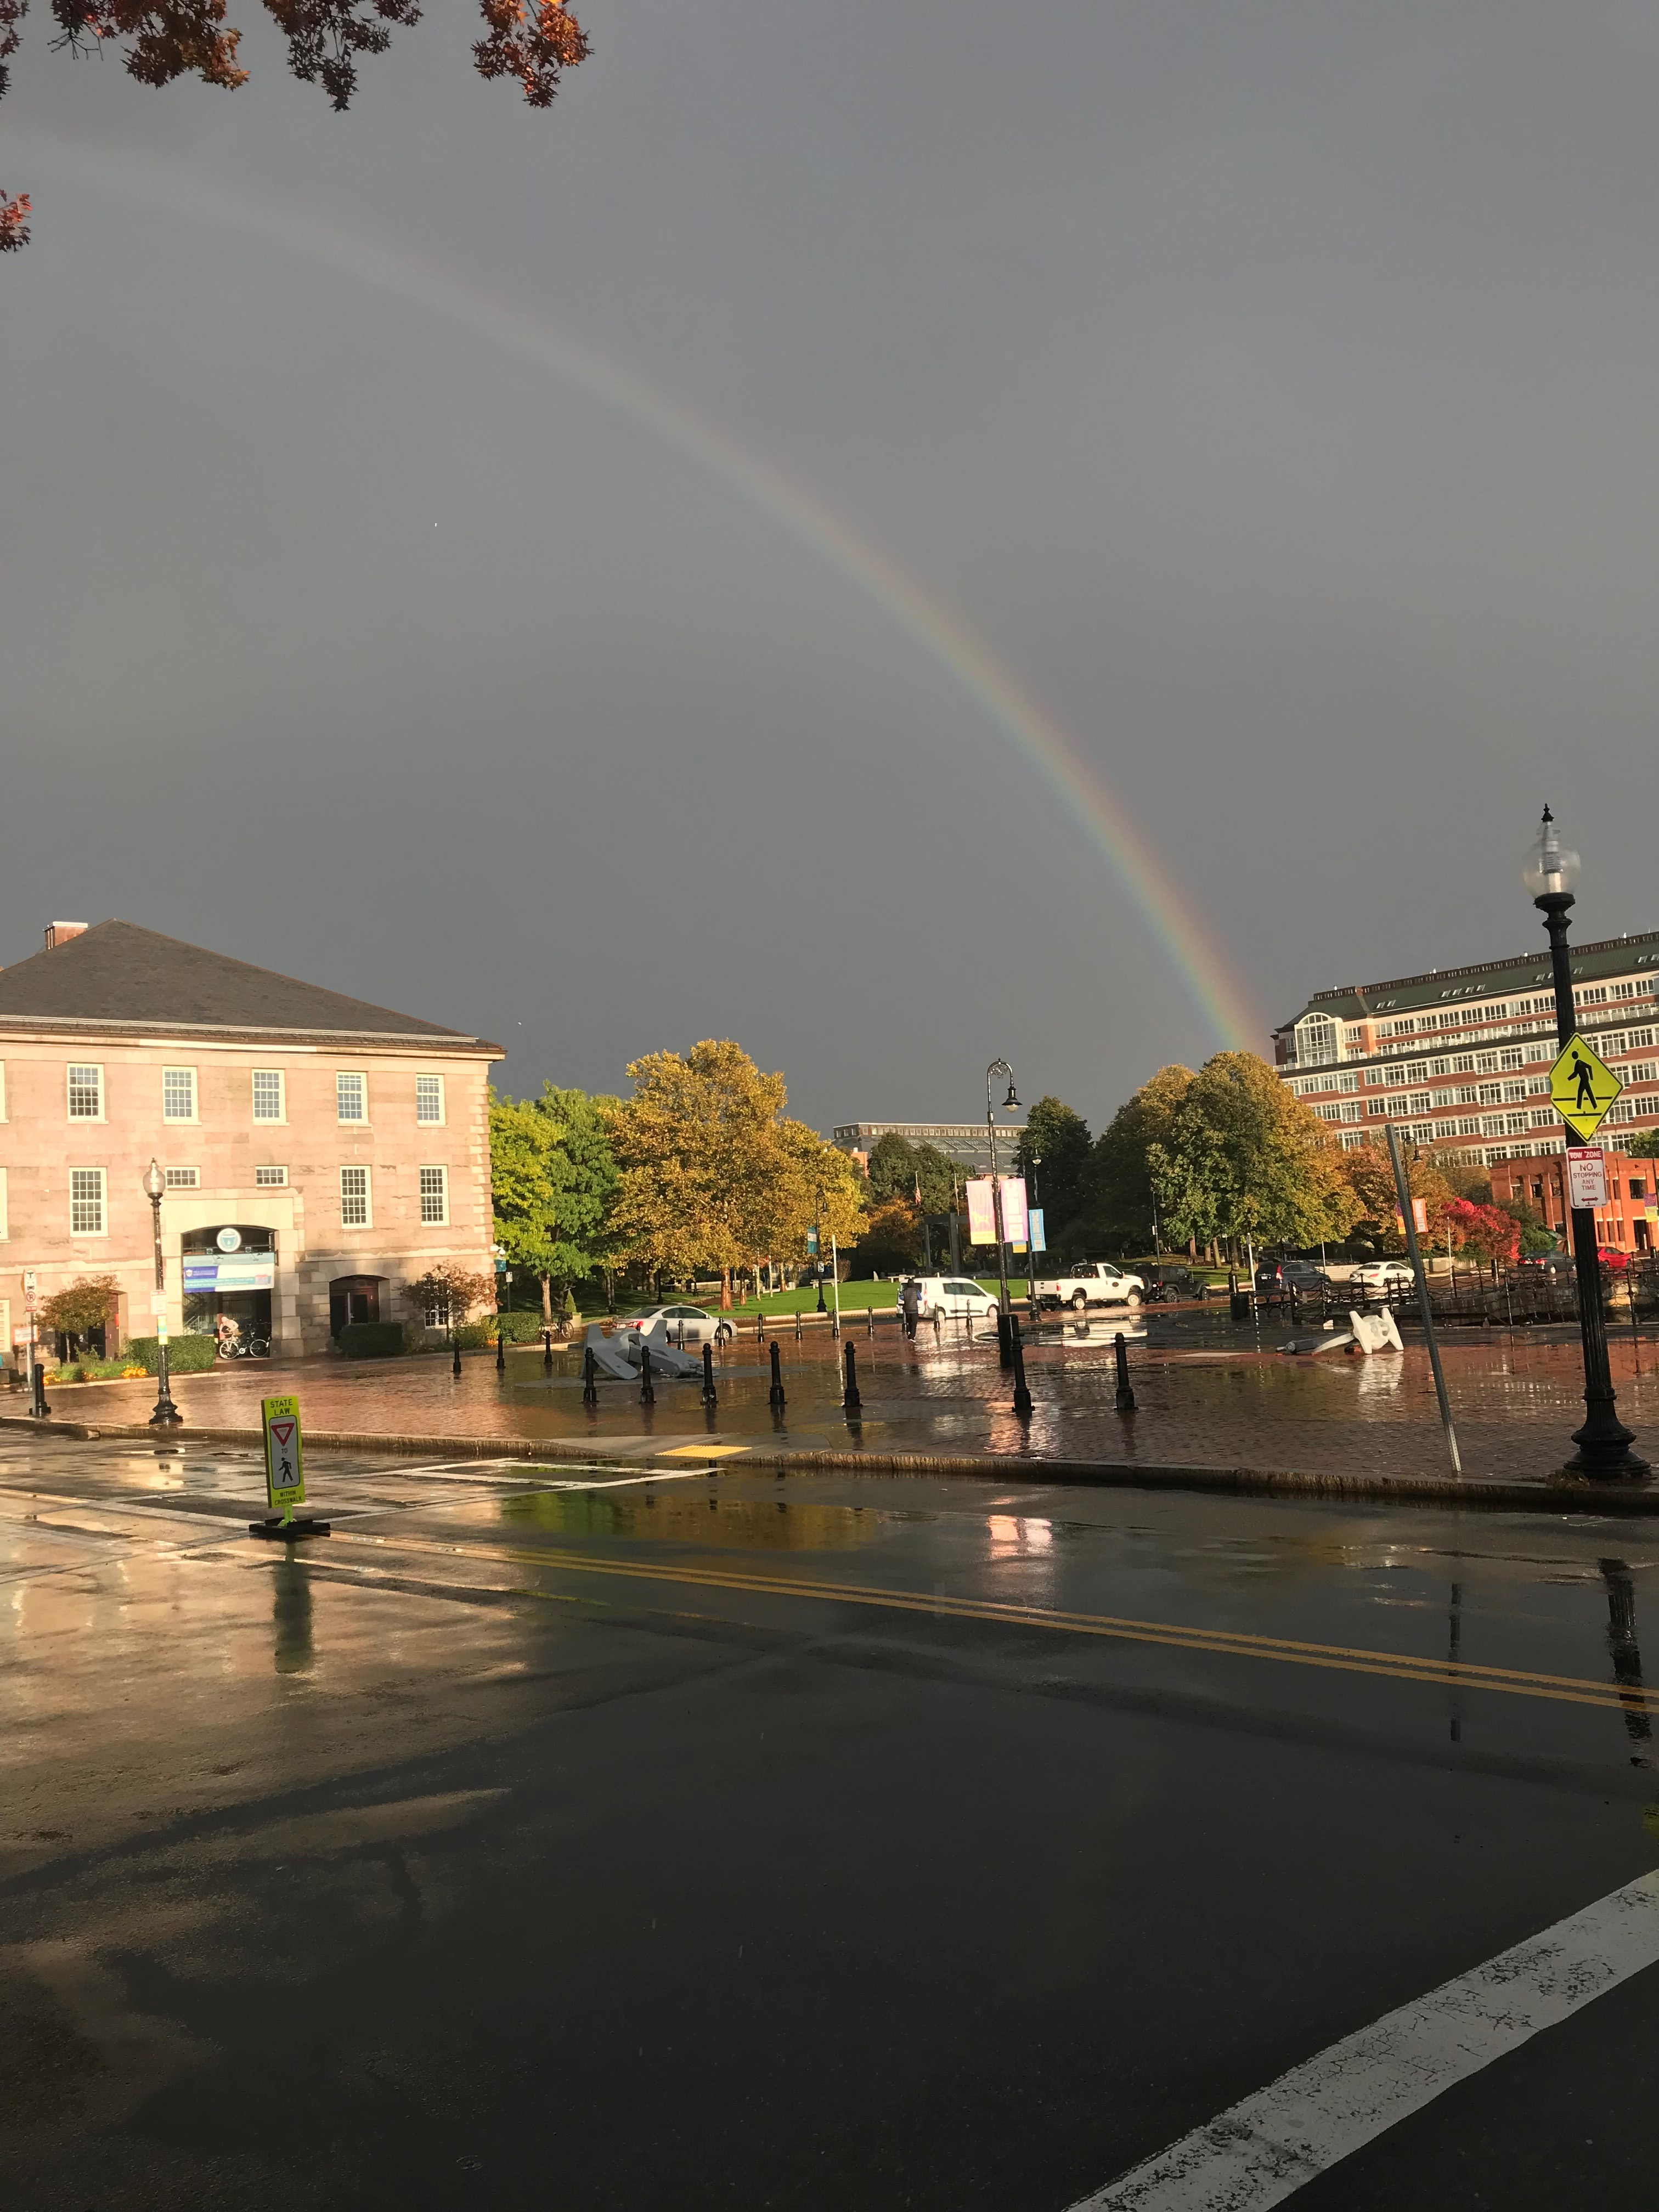 Rainbow over the Shouse Building